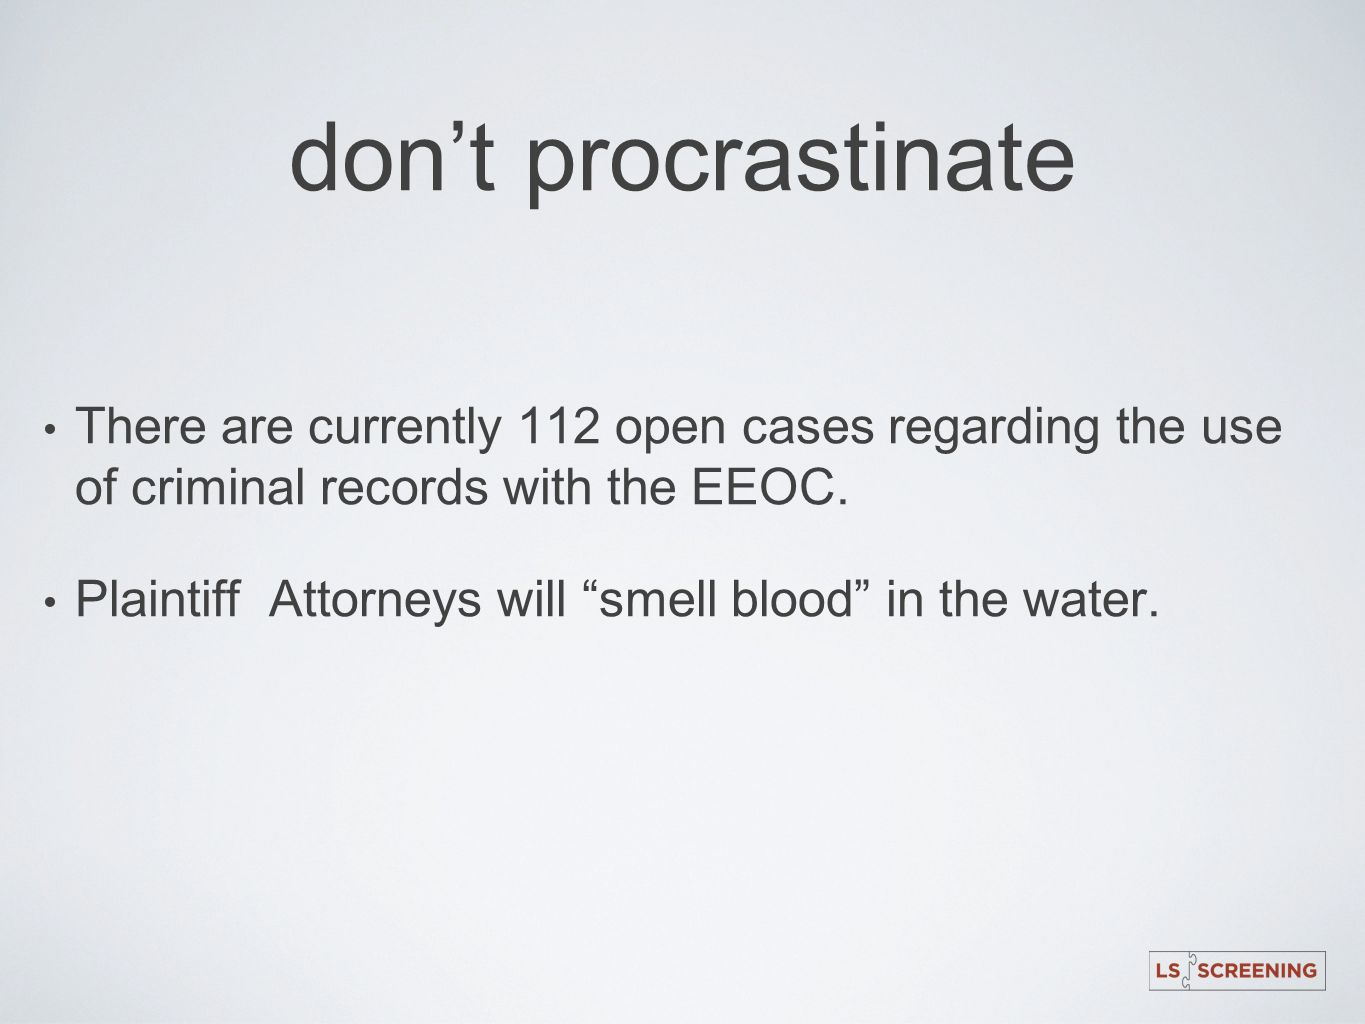 don't procrastinate There are currently 112 open cases regarding the use of criminal records with the EEOC.